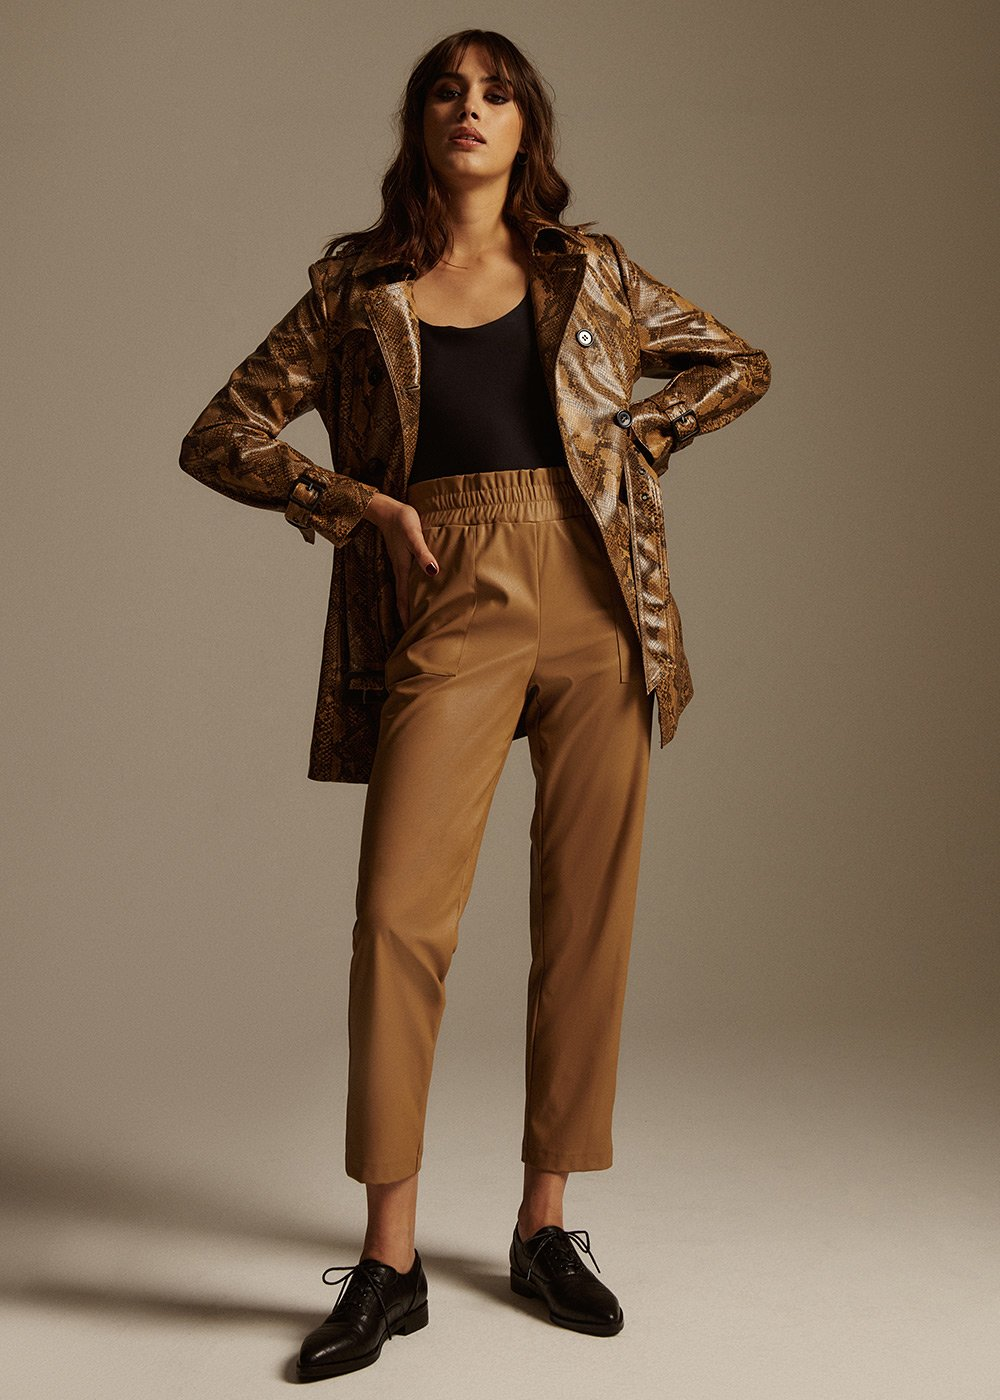 Patrick Eco-leather Trousers in Black - Beige - Woman